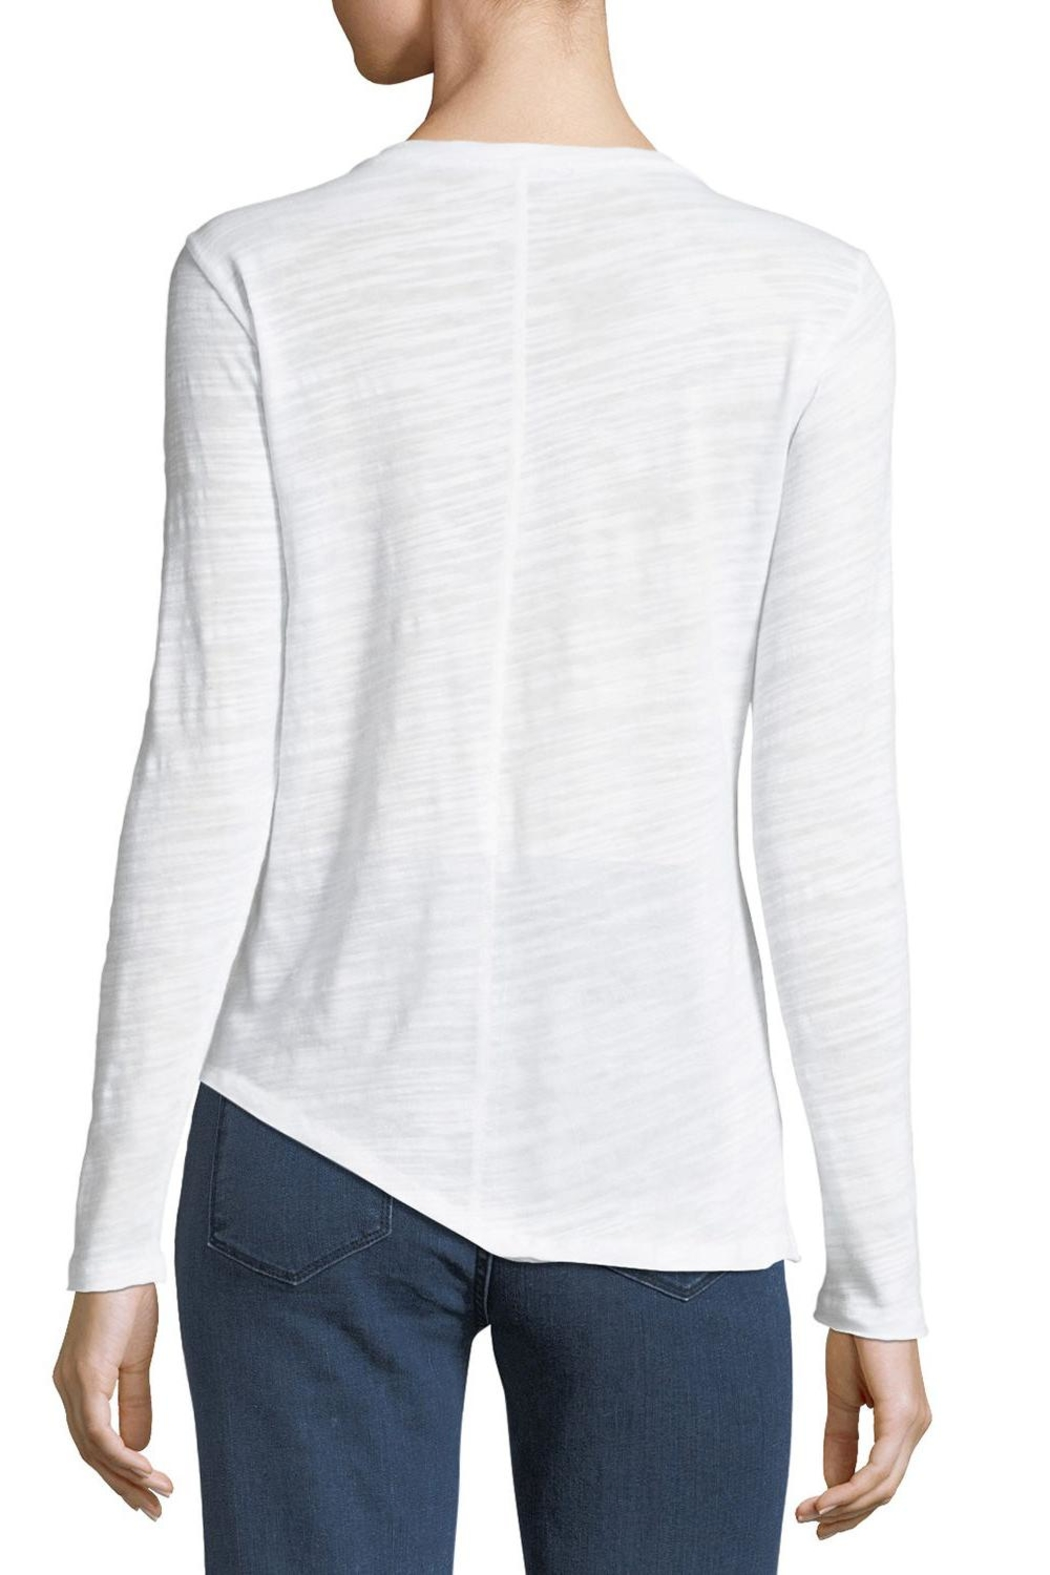 Metric Knits Asymmetric Boat-Neck Tee - Front Full Image